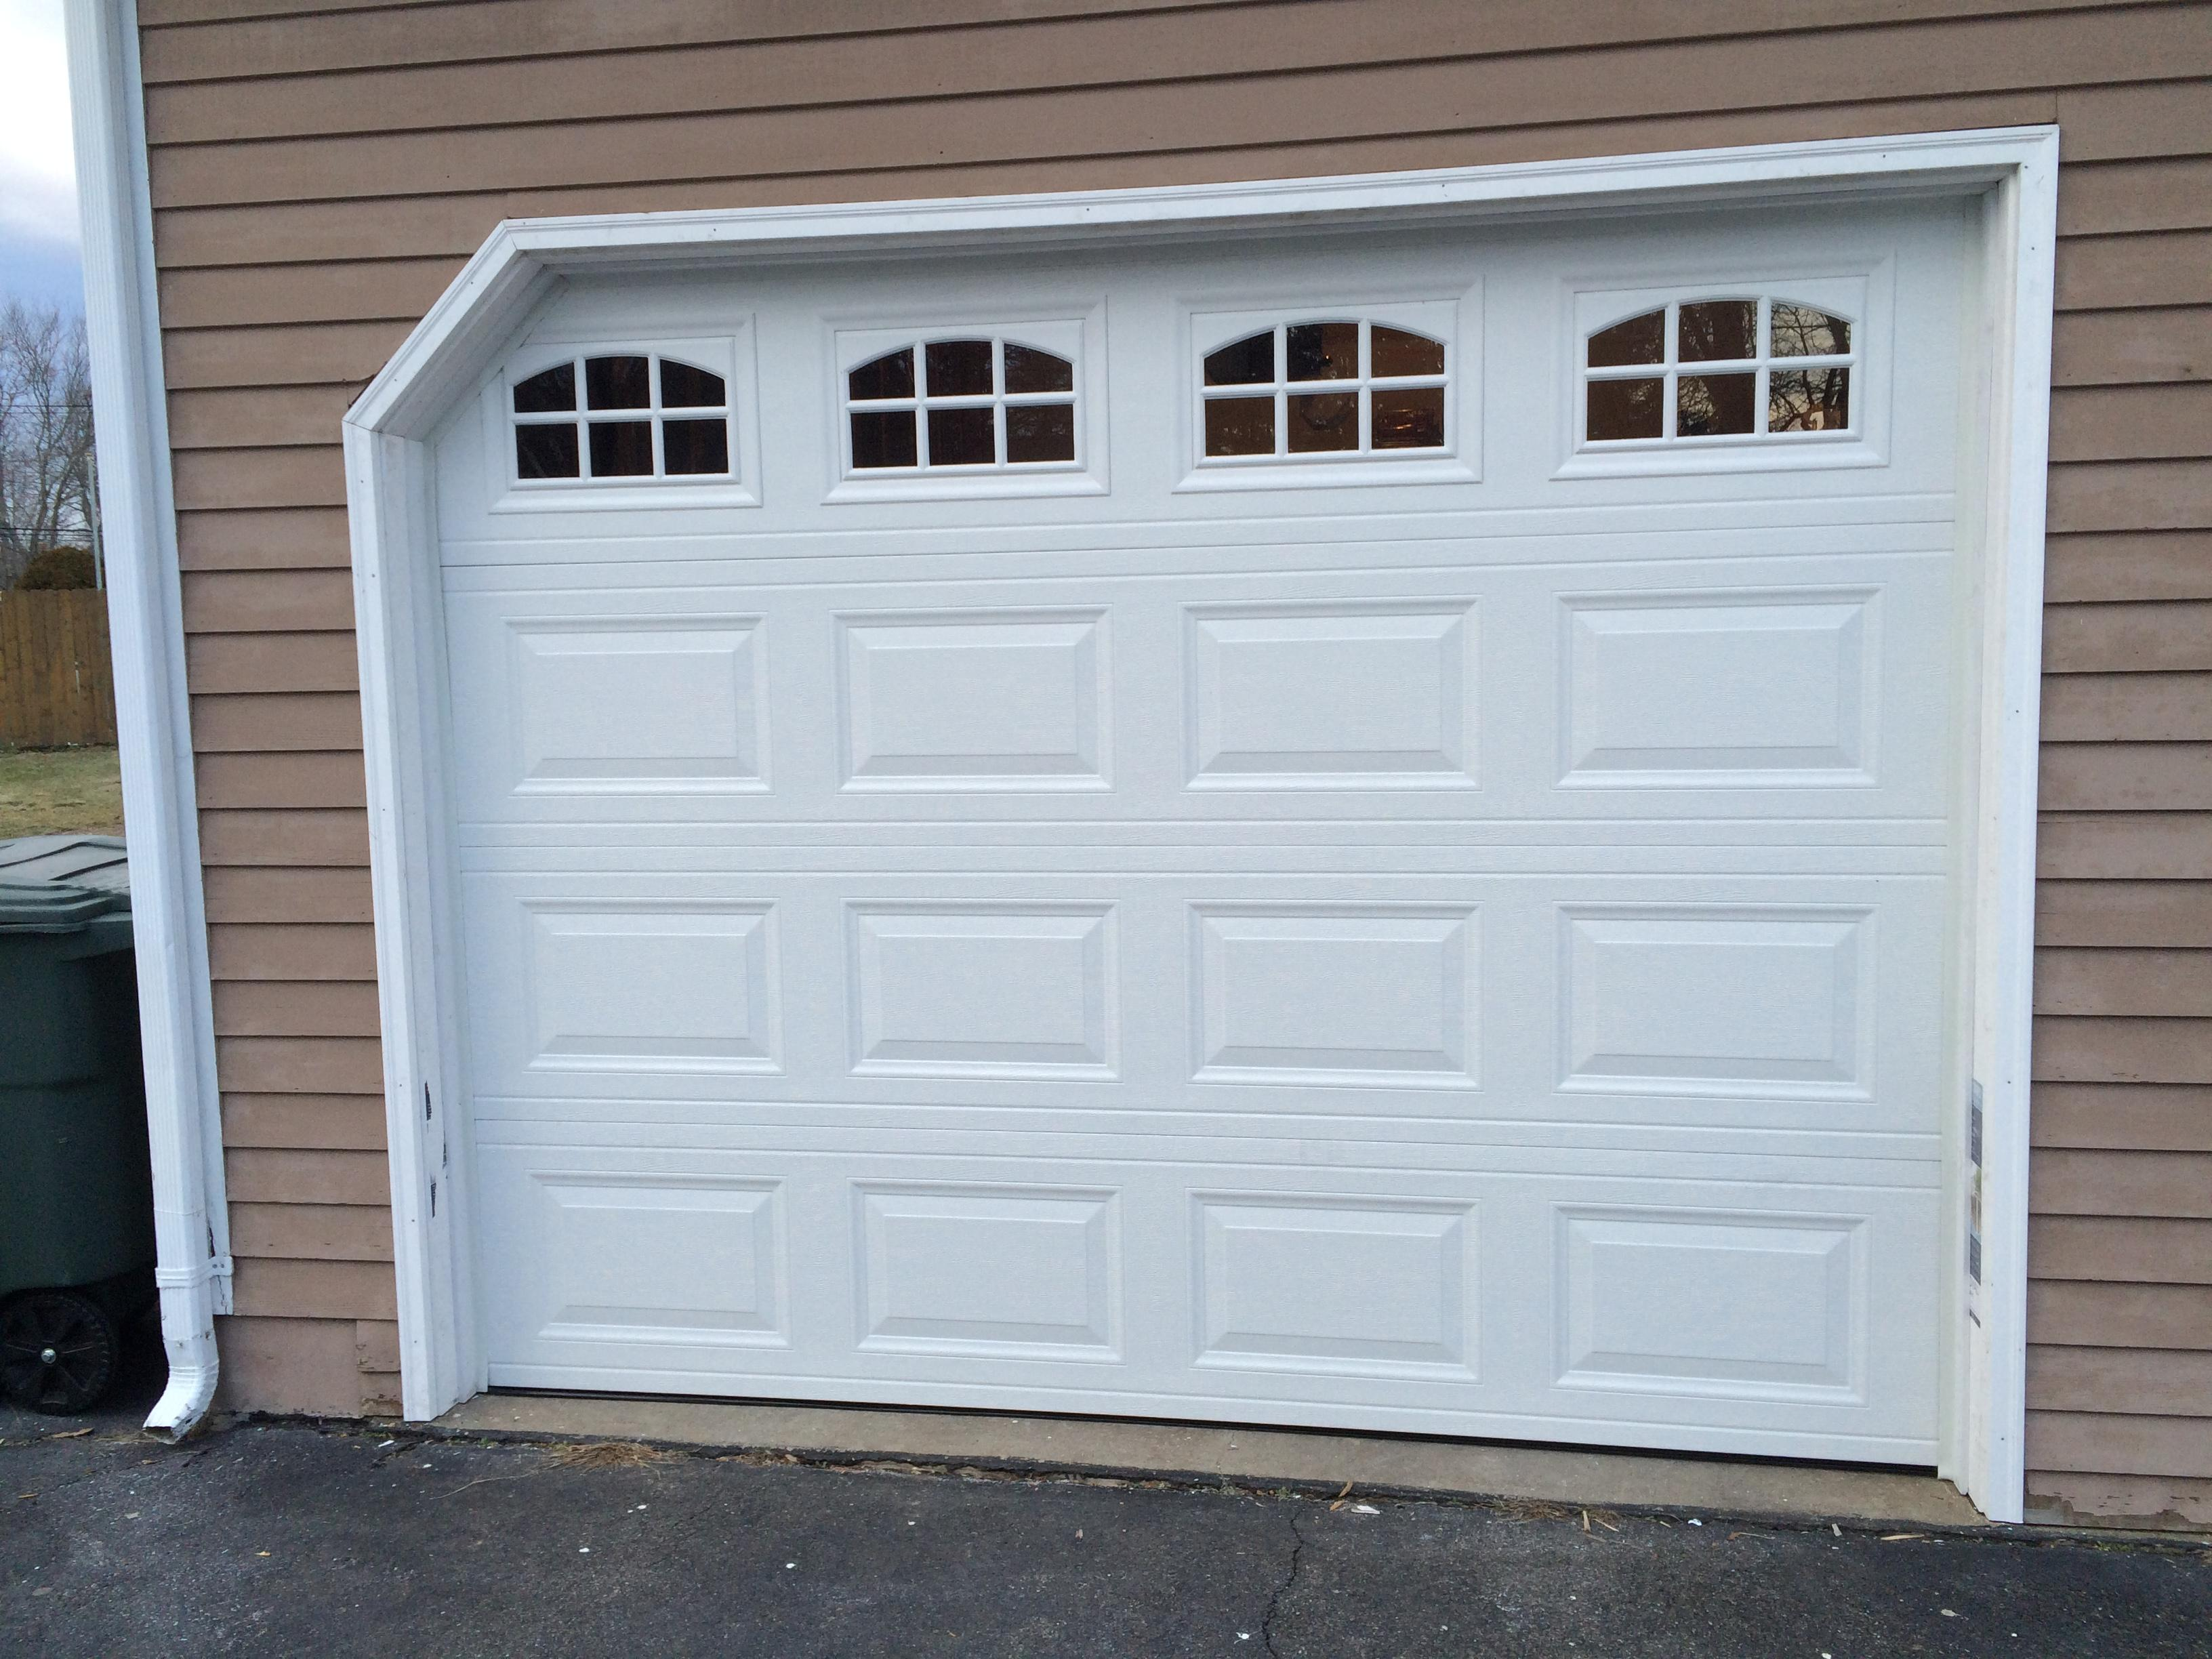 2448 #4E687E Overhead Doors Solutions In West Haven CT 06516 ChamberofCommerce  image Overhead Garage Doors Residential Reviews 37133264